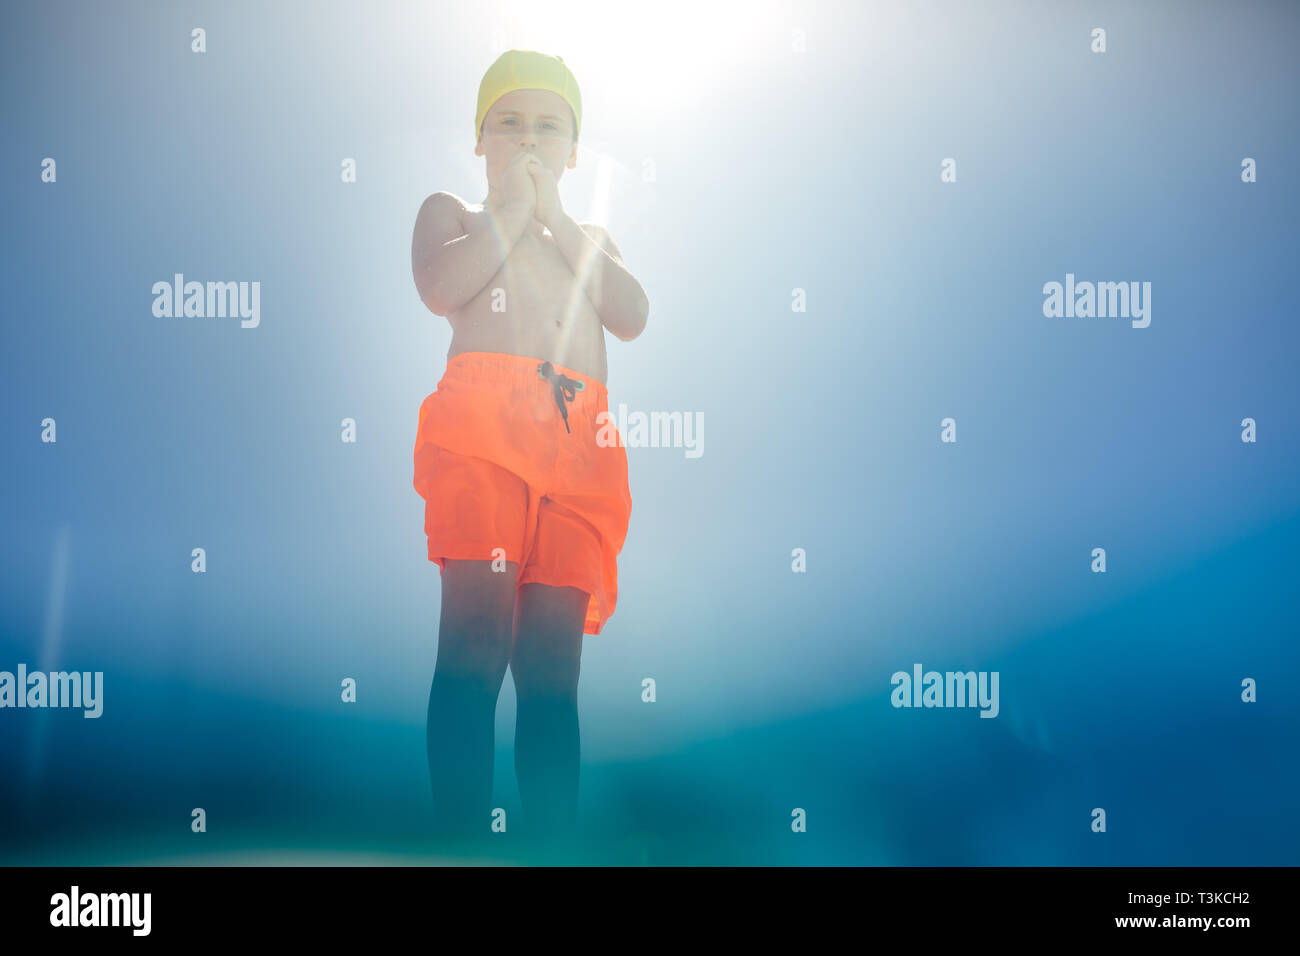 Low angle view of boy in swim trunks standing at the edge of the pool on sunny day. Boy in swimming costume seen from the pool. - Stock Image